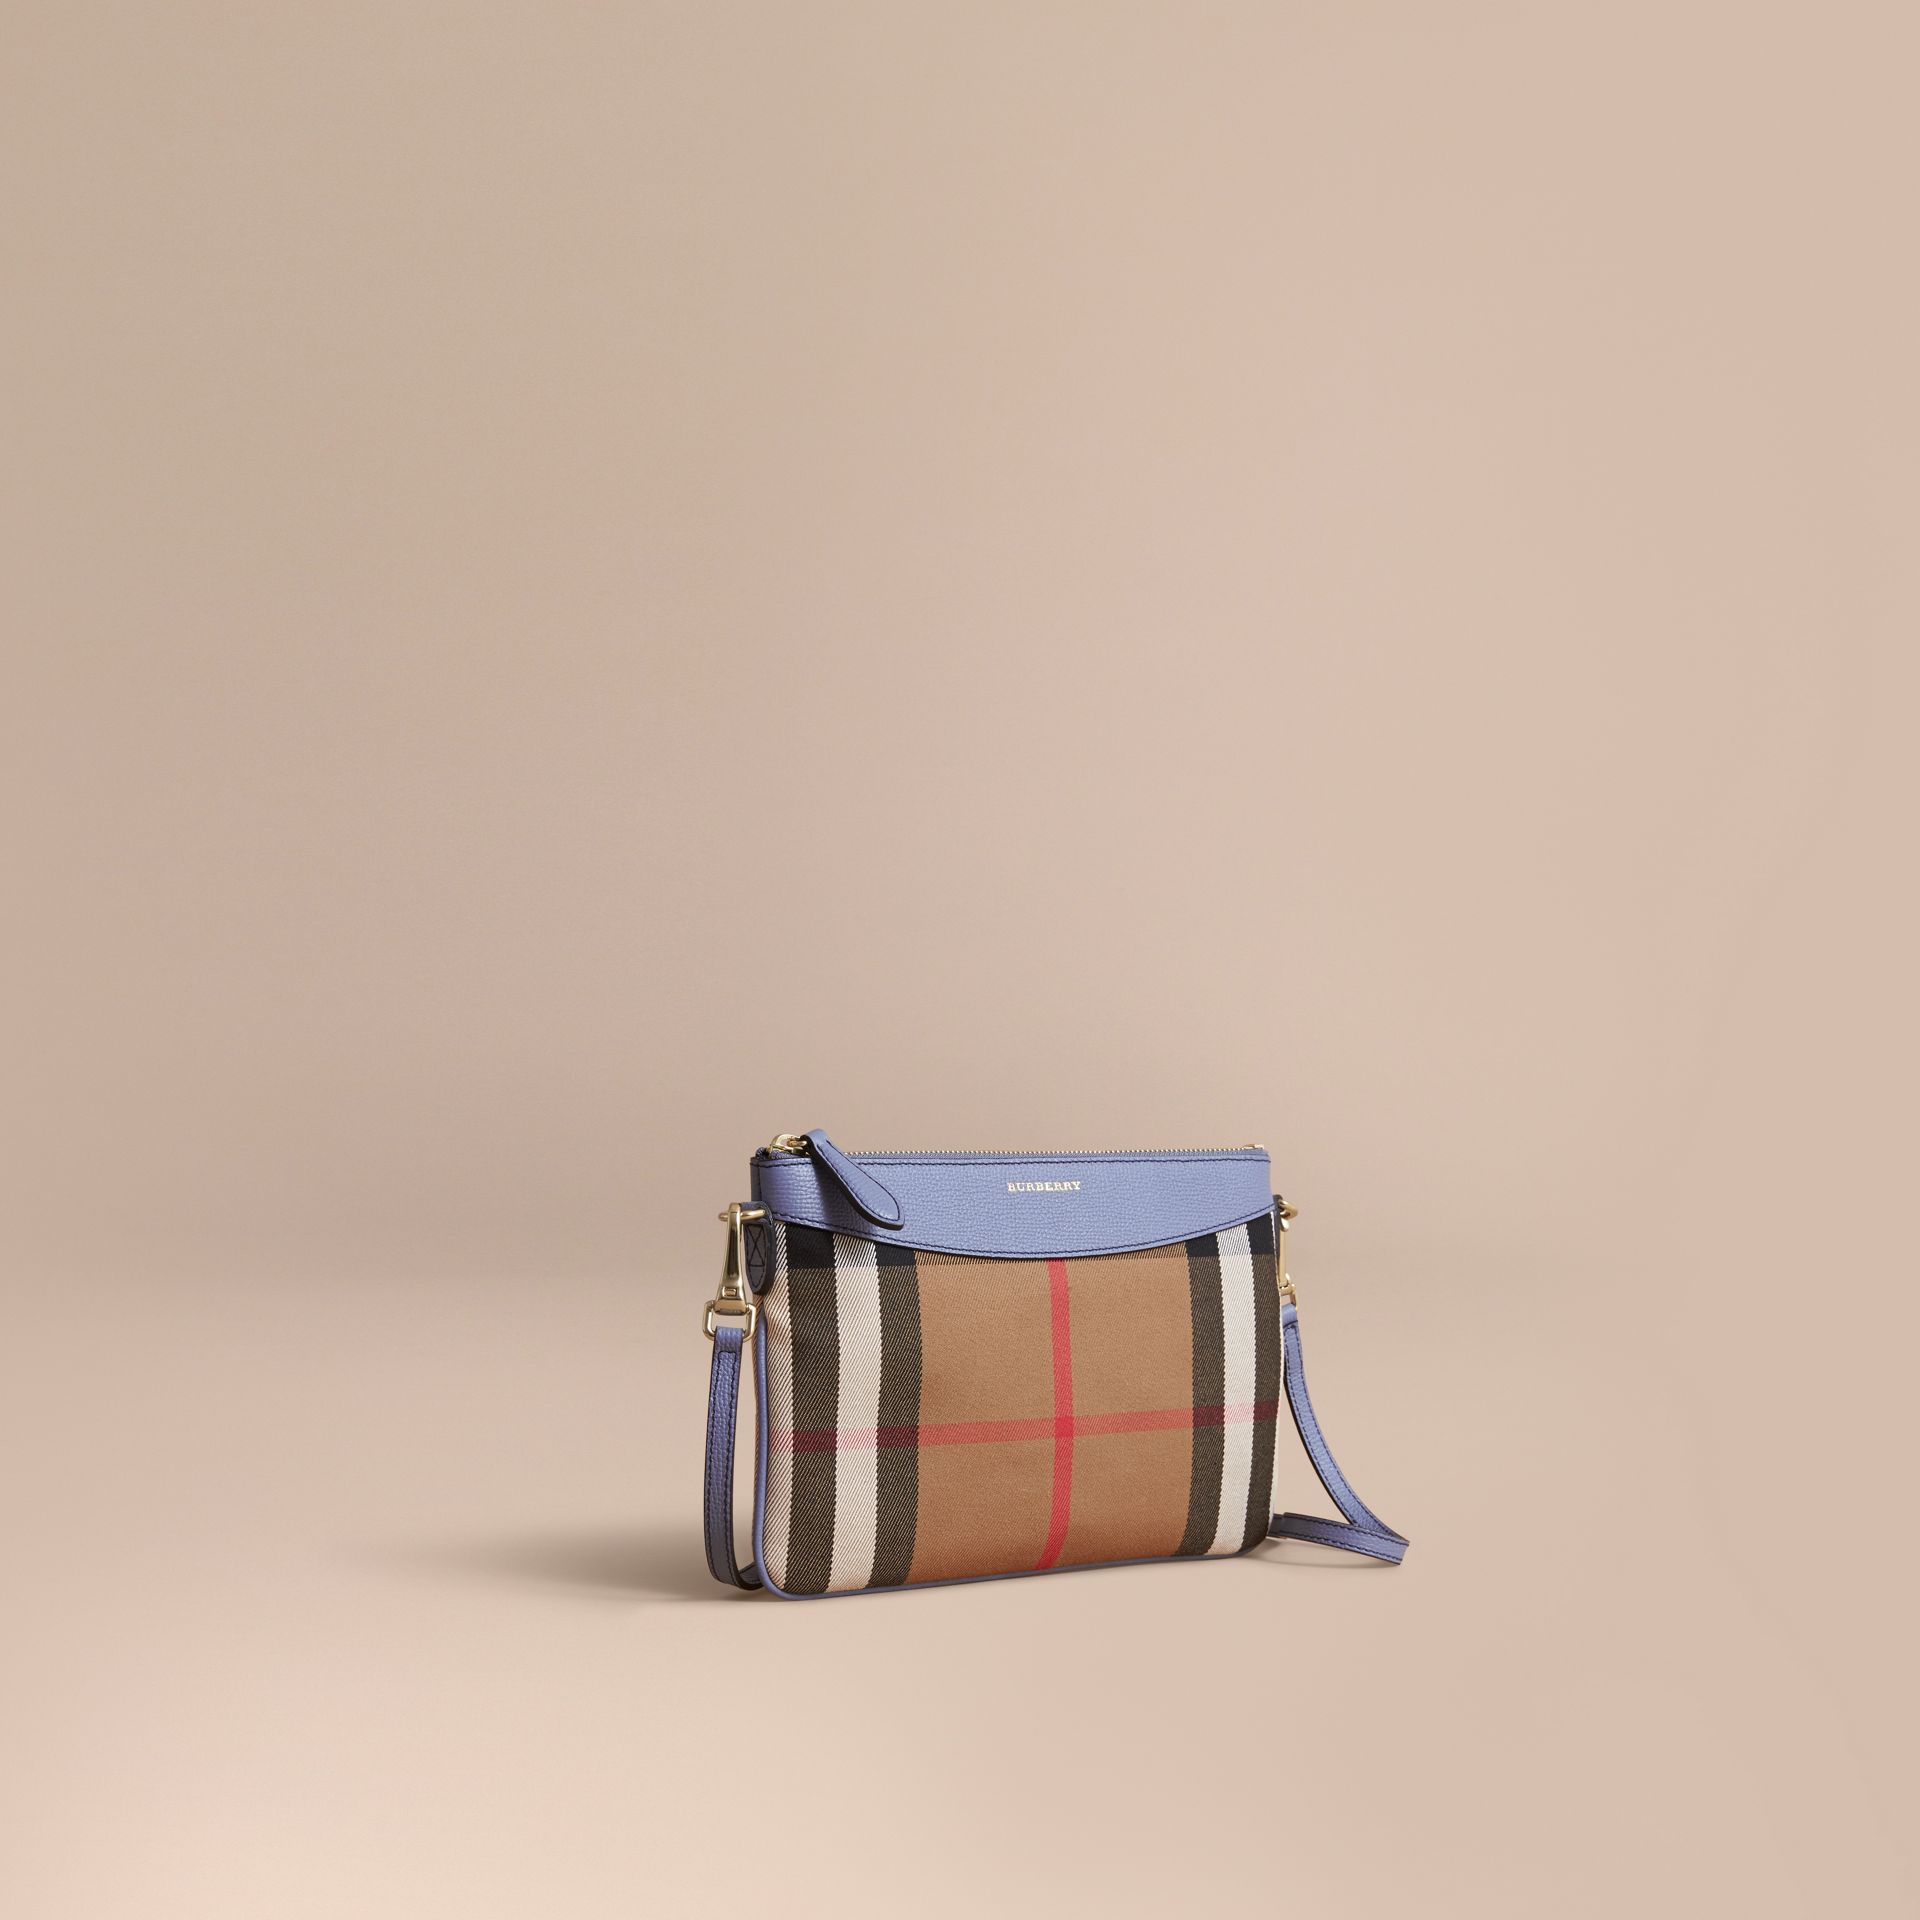 House Check and Leather Clutch Bag in Slate Blue - Women | Burberry - gallery image 1